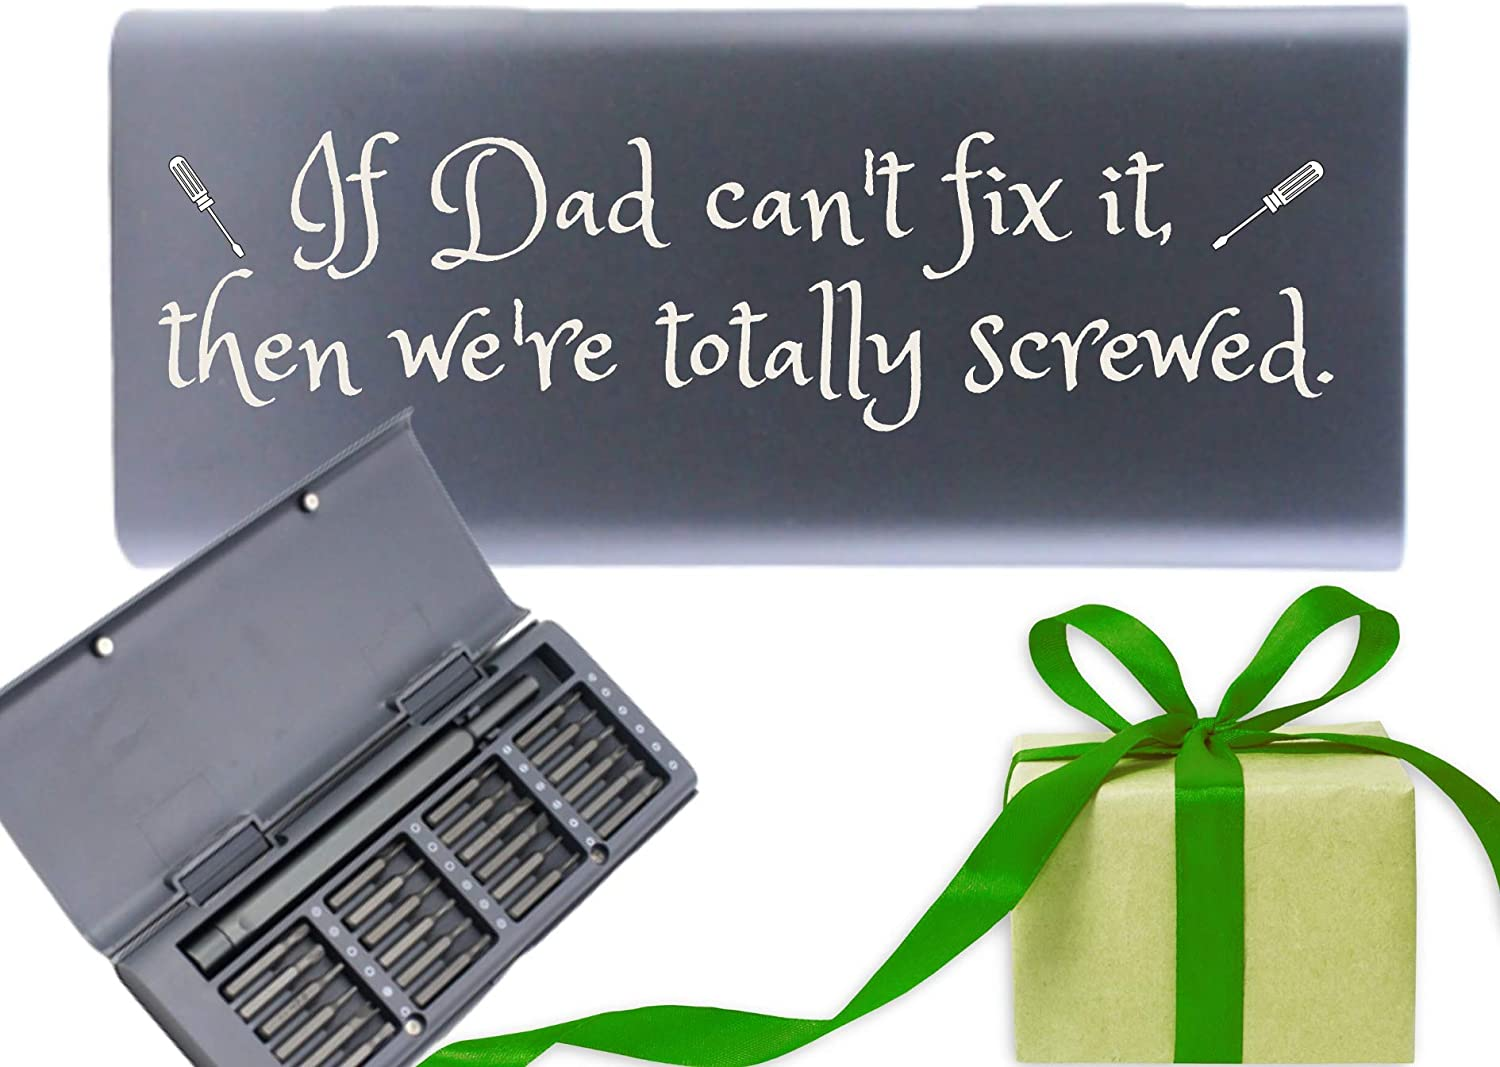 MGV precision screwdriver set with Humorous sayings, unique gift idea for that hard to buy person, Father's Day, Christmas, birthday etc… (If Dad can't fix it then we're totally screwed)